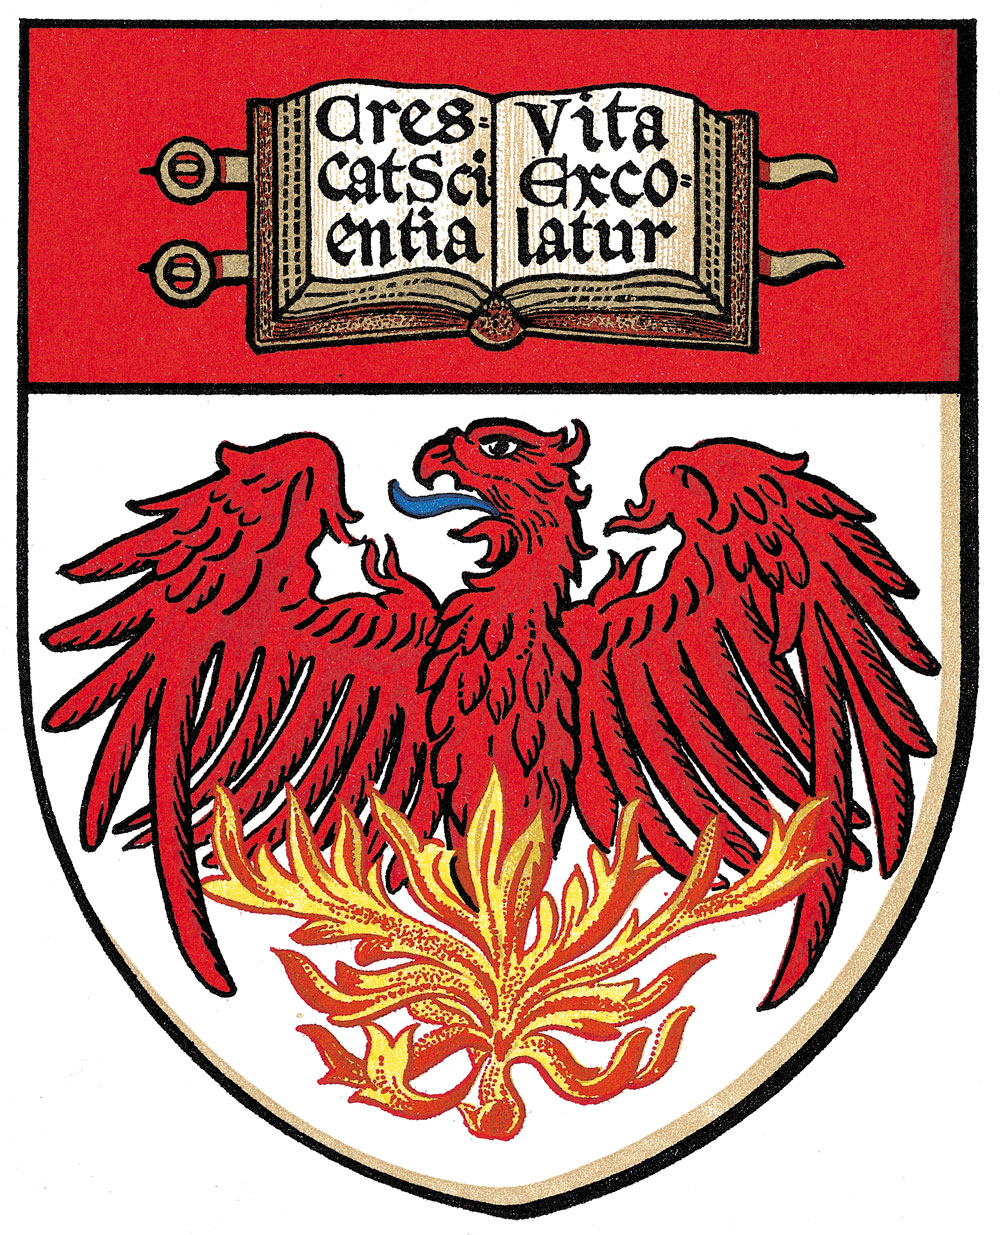 Coat of arms of the University of Chicago.